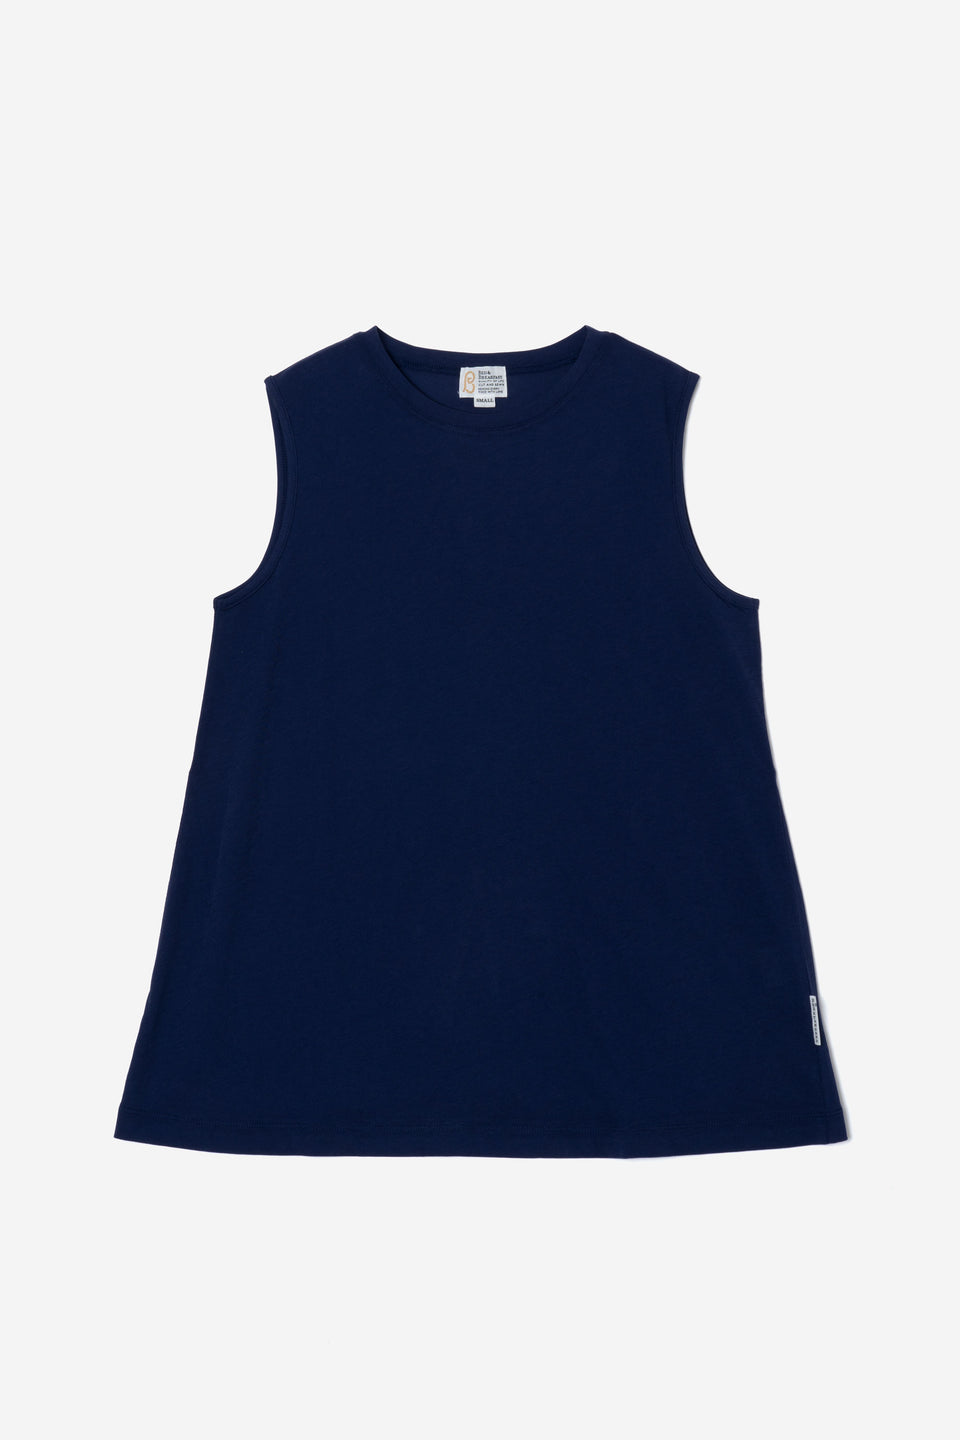 Technorama Standard Drape Tank in Navy